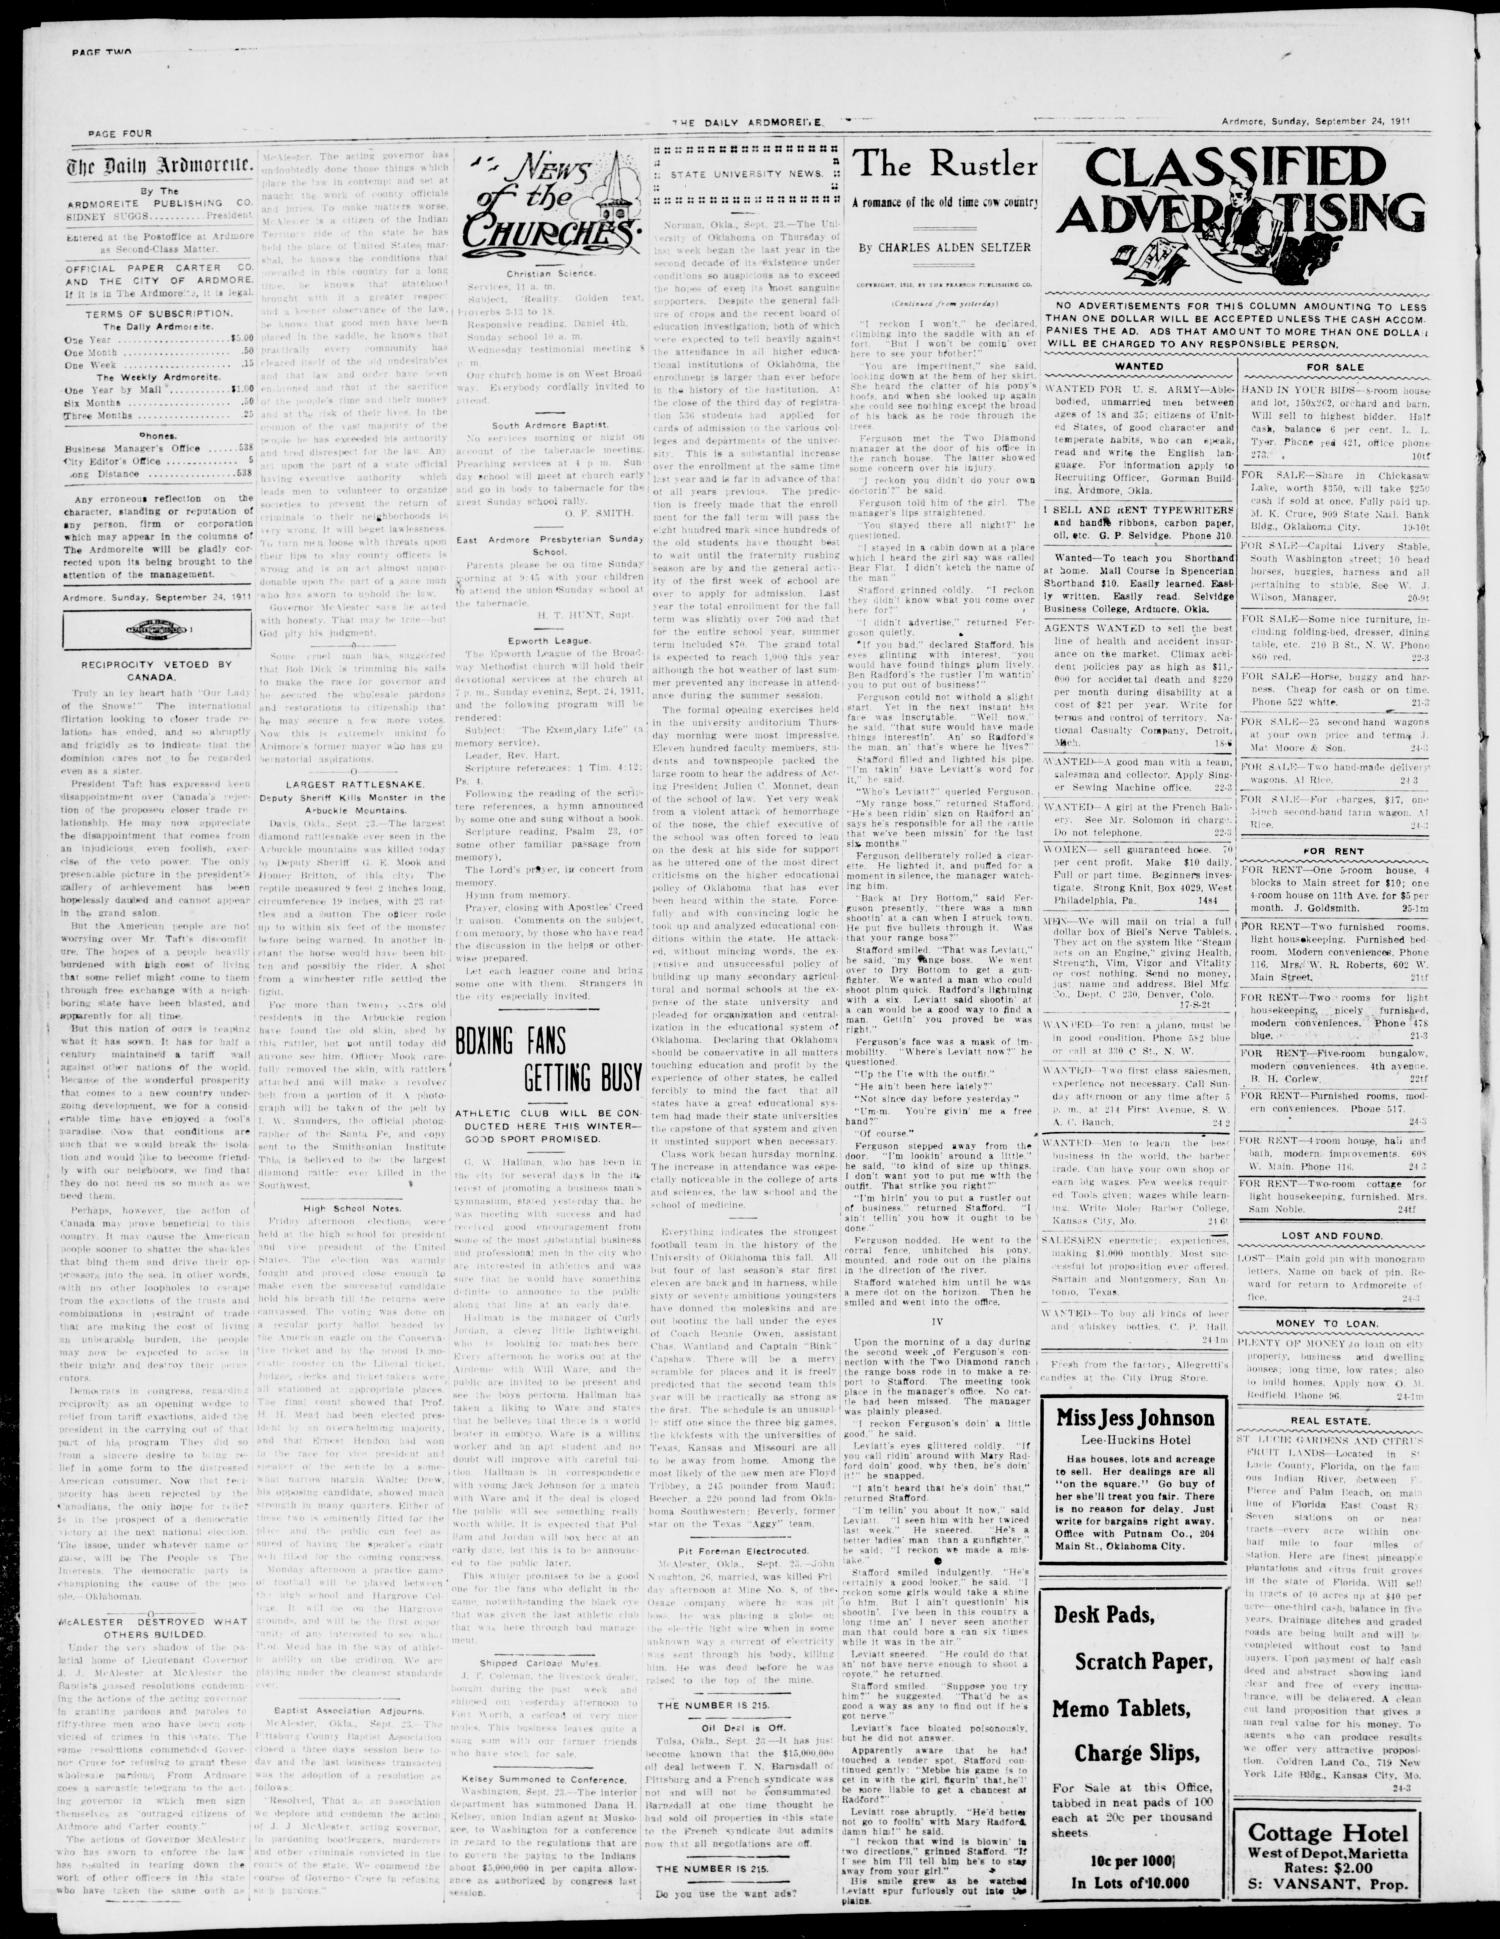 The Daily Ardmoreite. (Ardmore, Okla.), Vol. 17, No. 302, Ed. 1 Sunday, September 24, 1911                                                                                                      [Sequence #]: 4 of 8